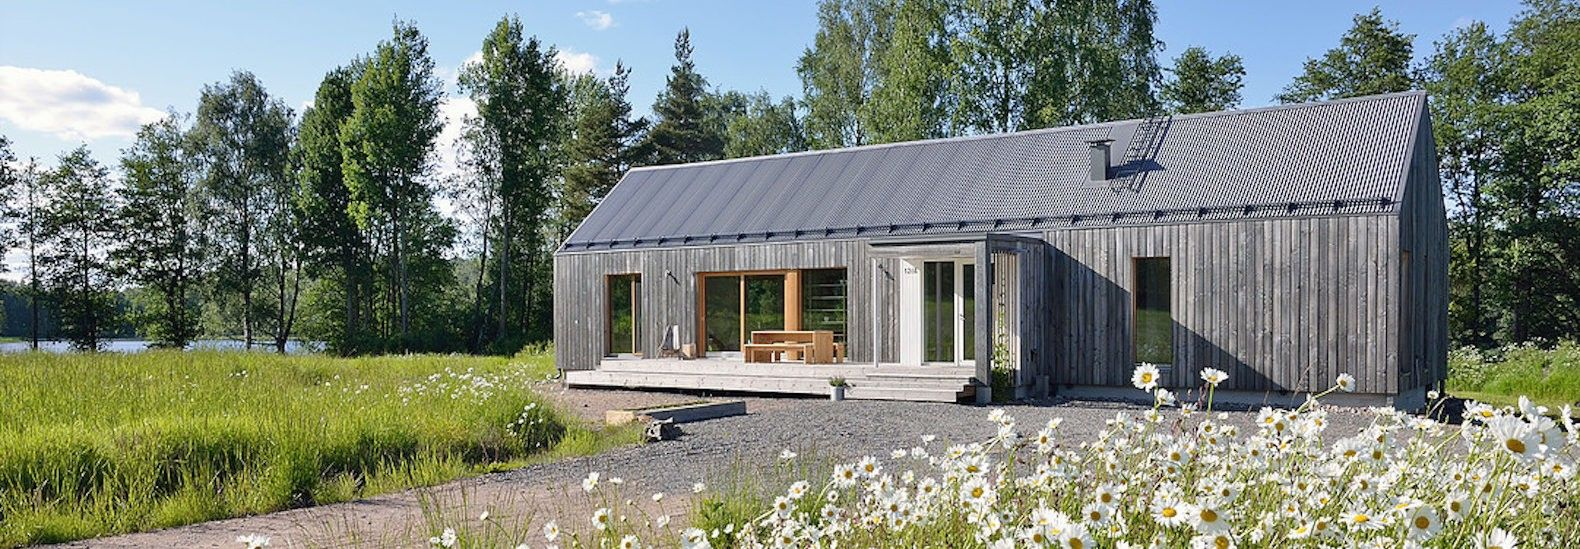 Good Contemporary Finnish Lake House Is Built With Seven Types Of Timber